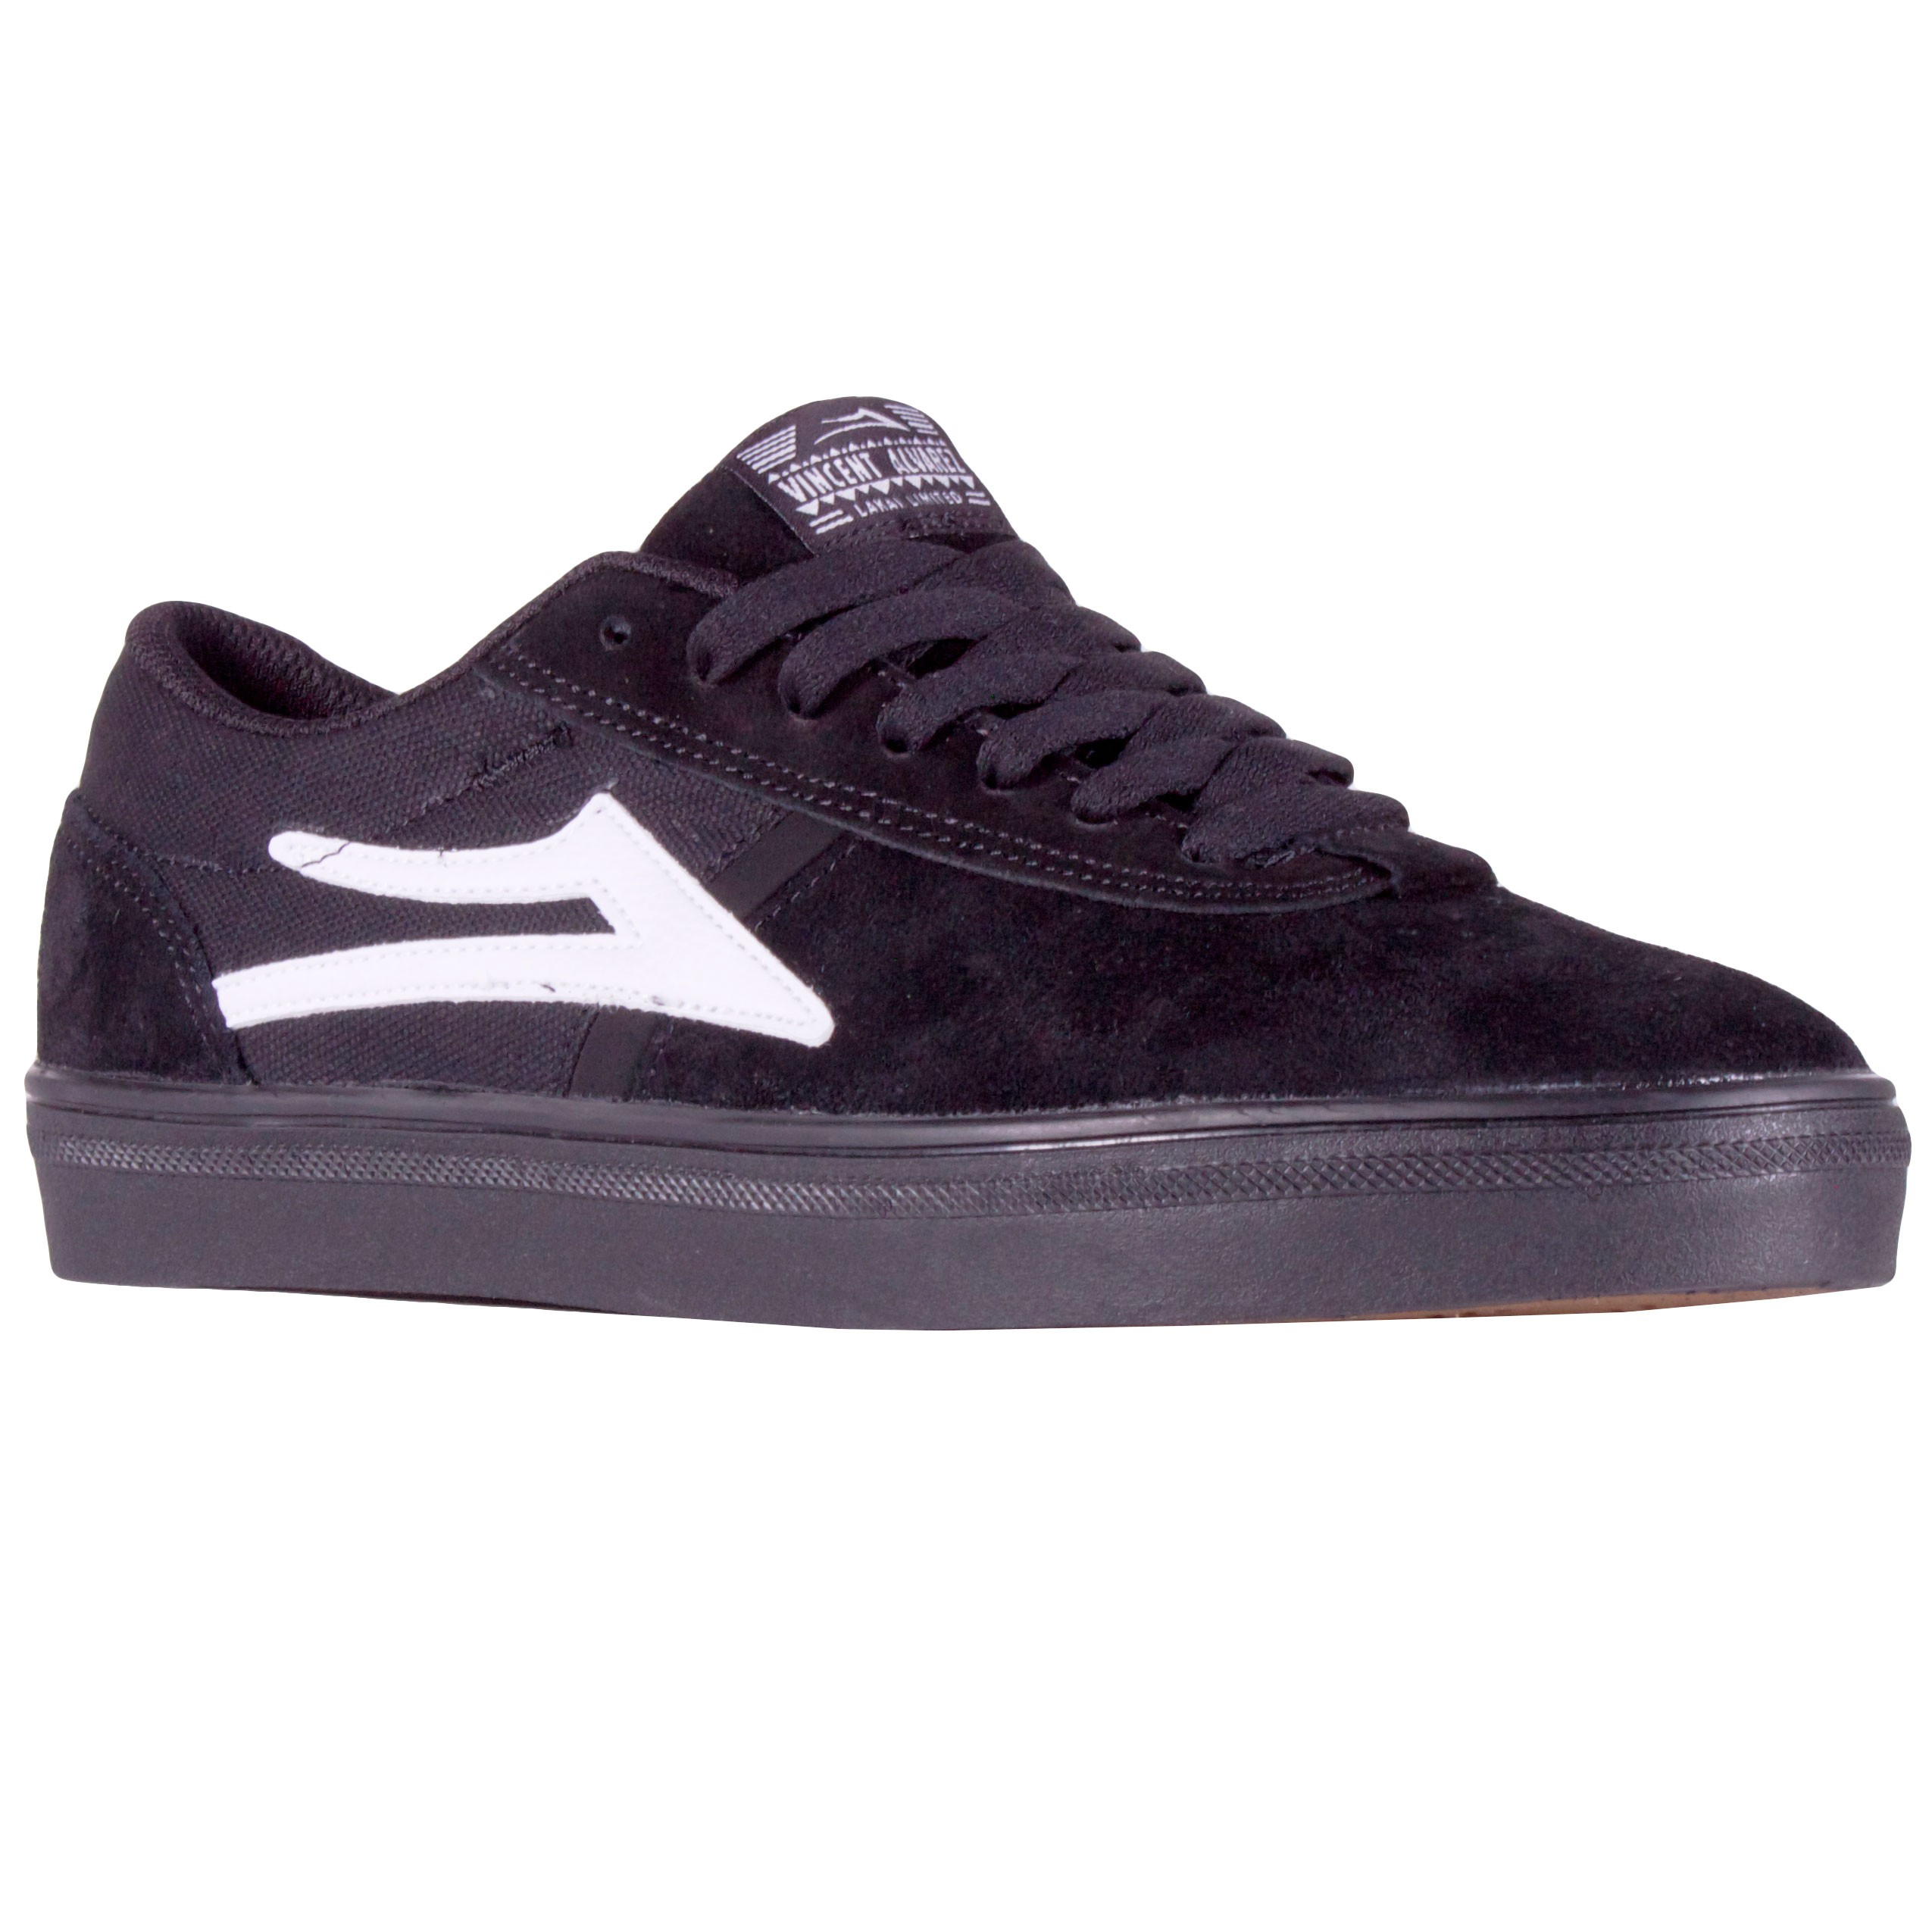 Lakai Vincent Shoes - Black / Black - Black/Black - 8.0